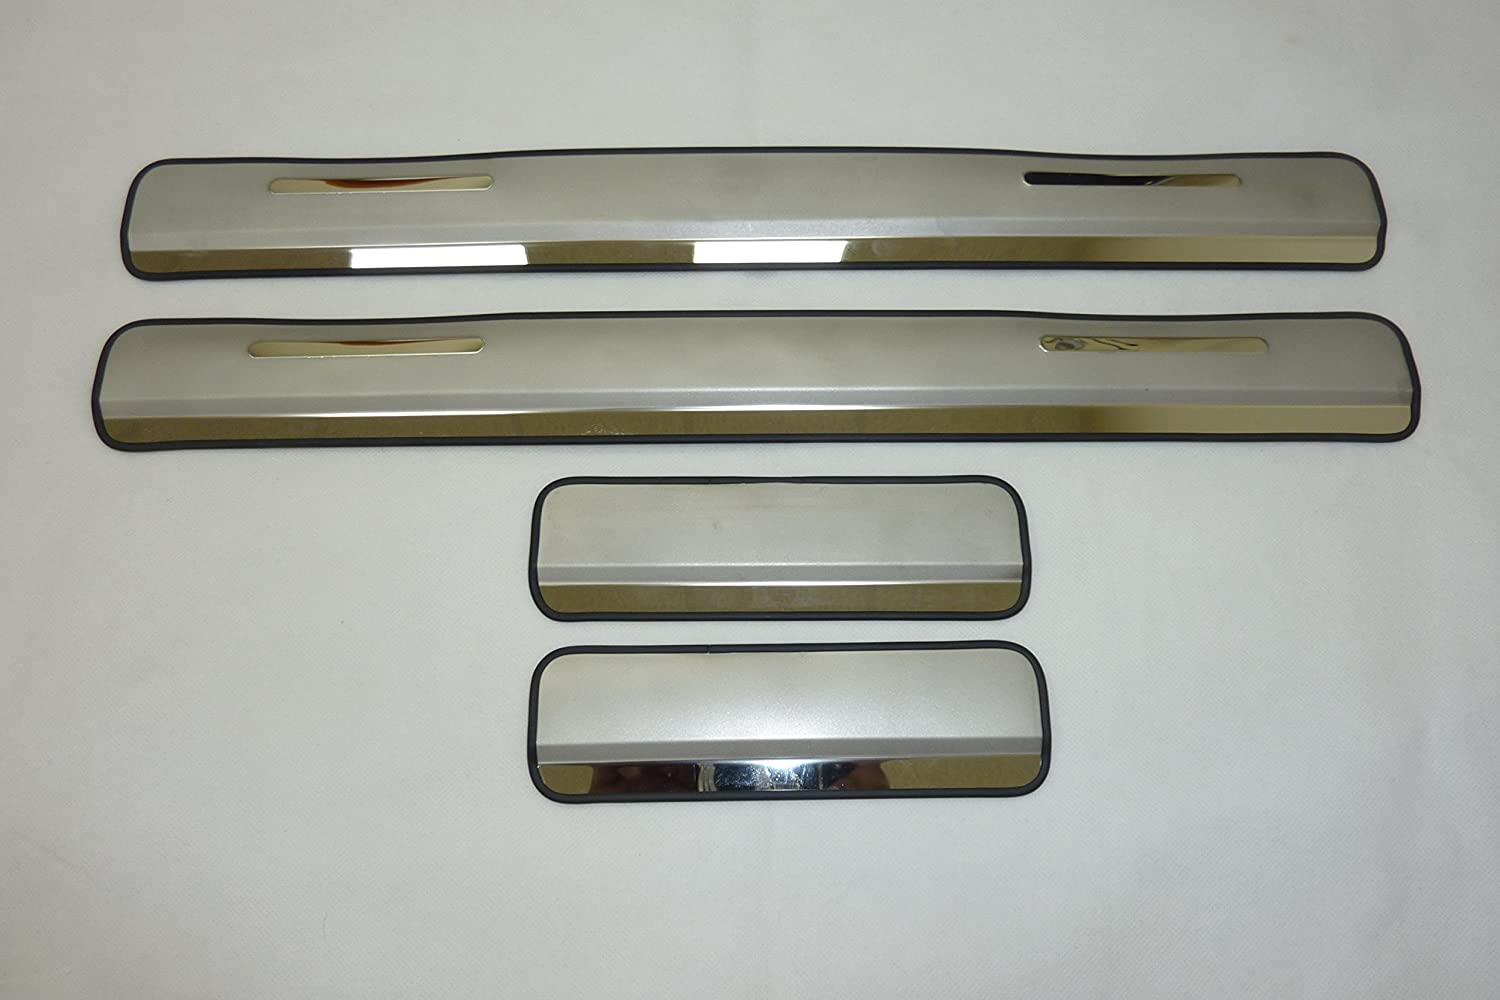 Chrome Door Sill Covers Protectors x 4 Brand New